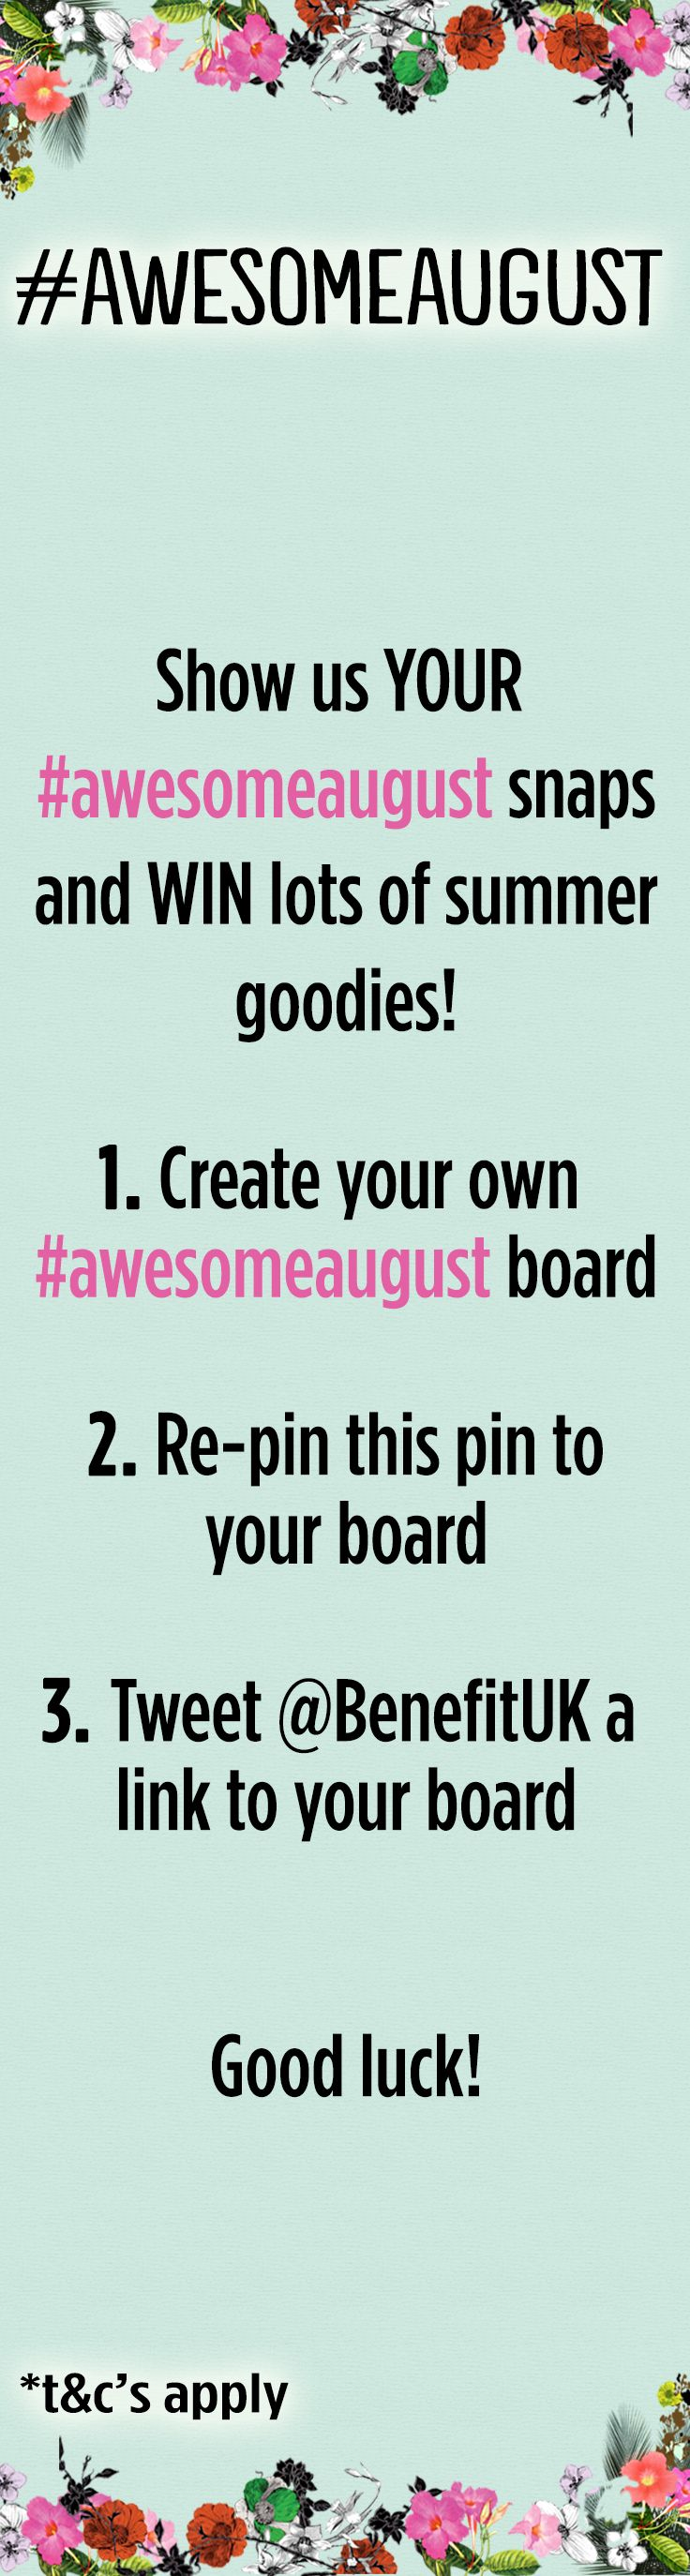 Don't forget that #awesomeaugust is about more than just making epic memories..it's about giving yourself the chance to win our summer selection of goodies and brand-new Benefit product!